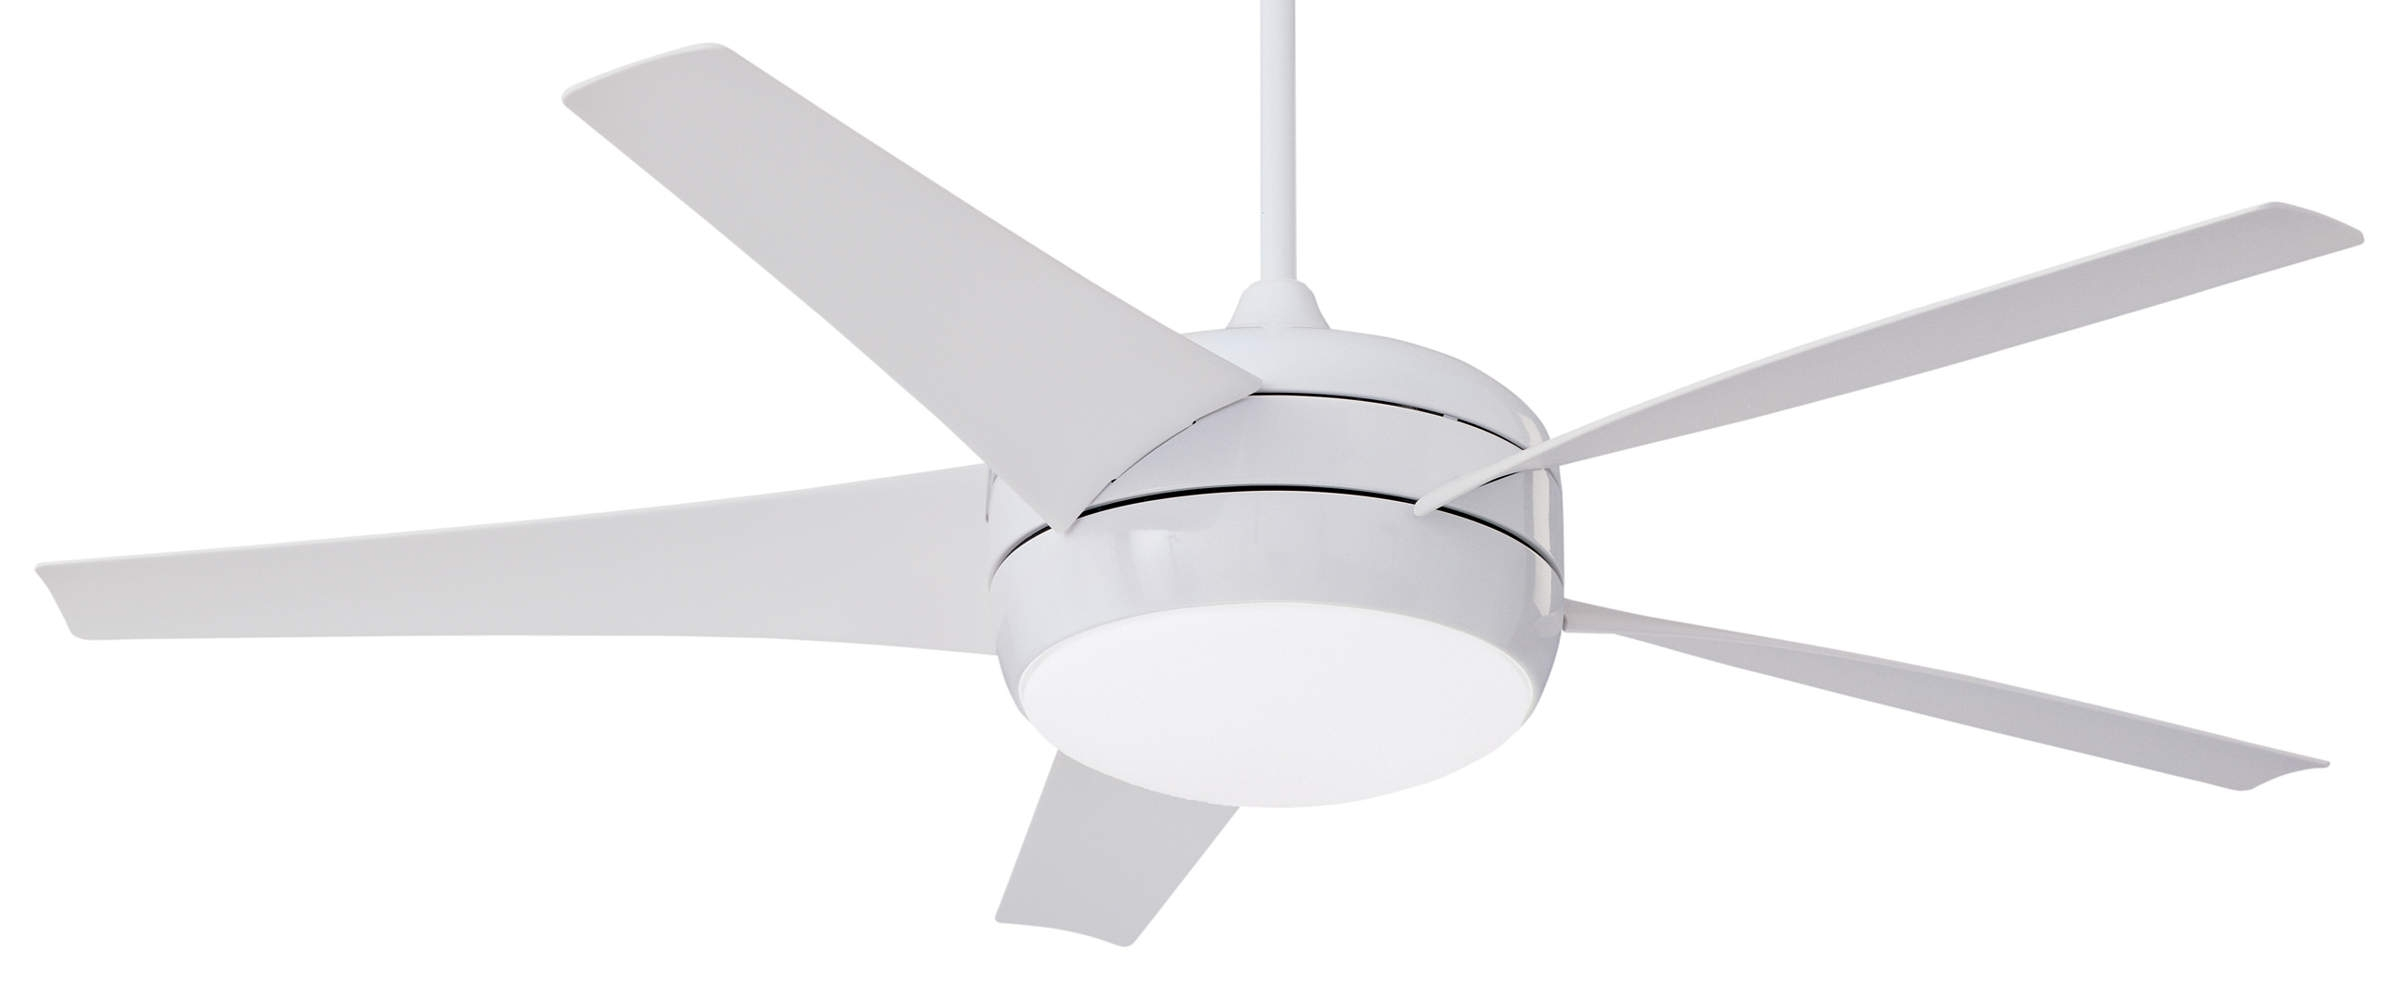 Emerson Midway Eco Dc Motor Ceiling Fan Cfww In Gloss White With Within Popular Low Profile Outdoor Ceiling Fans With Lights (View 19 of 20)